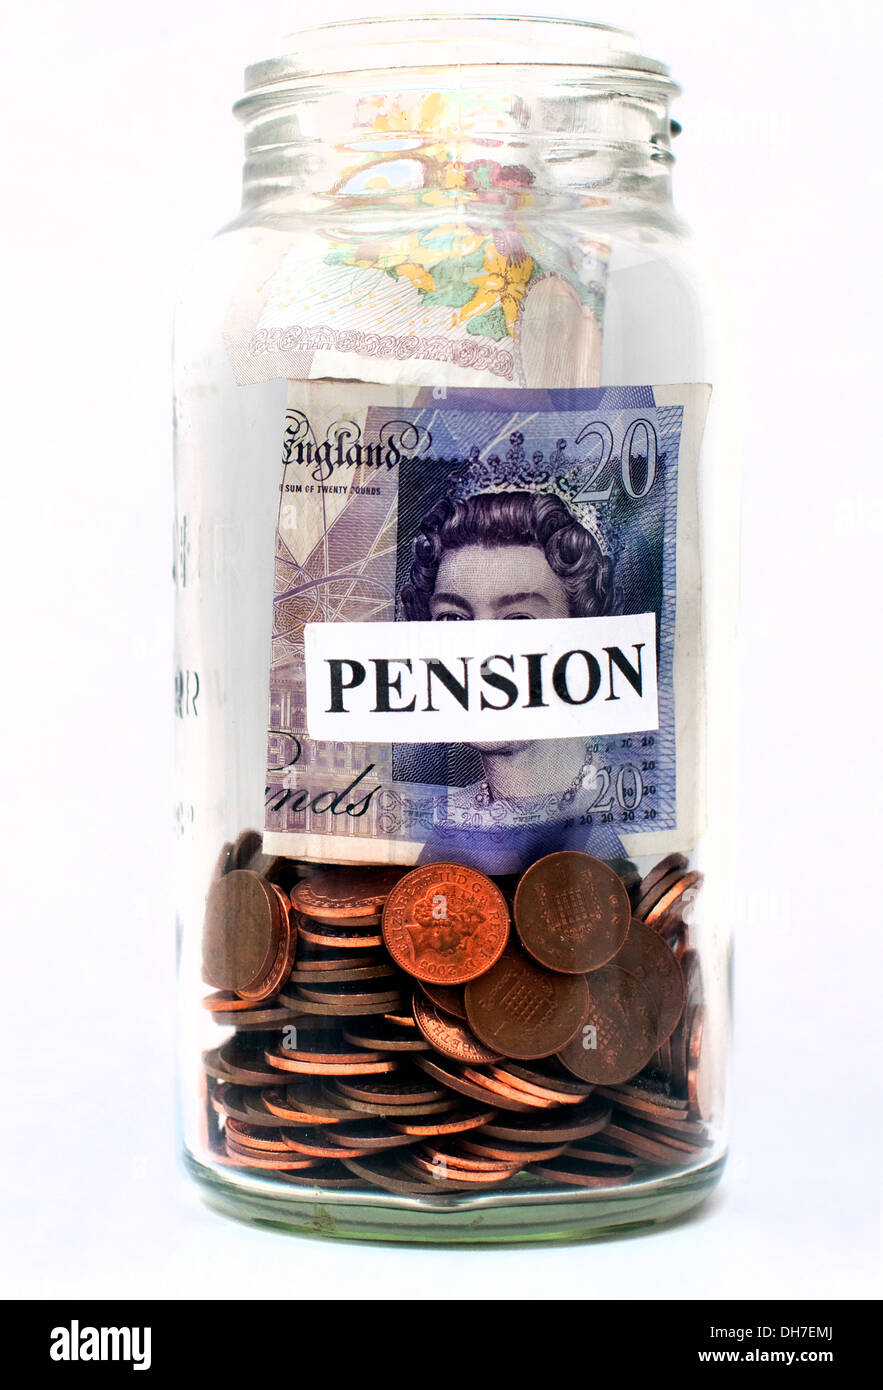 Illustration of money filling a pension pot, London - Stock Image